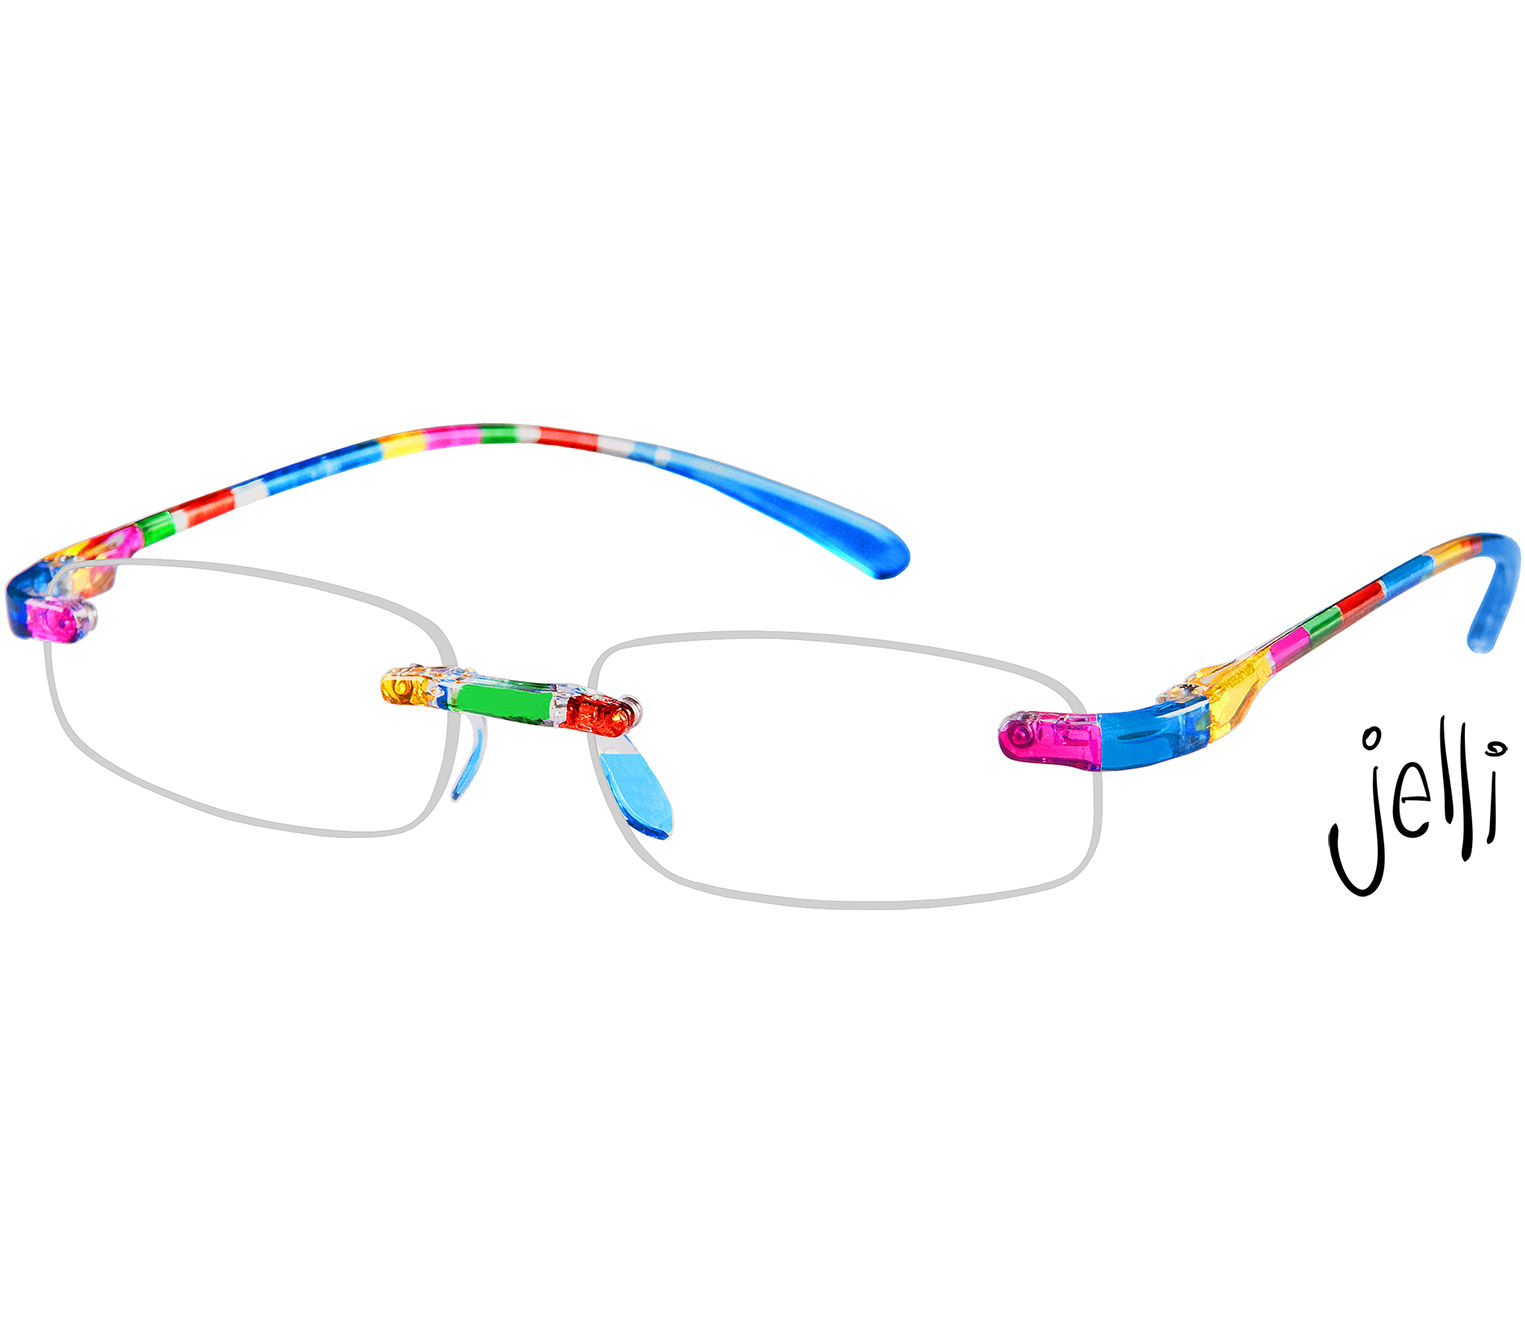 8ce0e8b95bd1 Jelli (Multi-coloured) Rimless Reading Glasses - Thumbnail Product Image